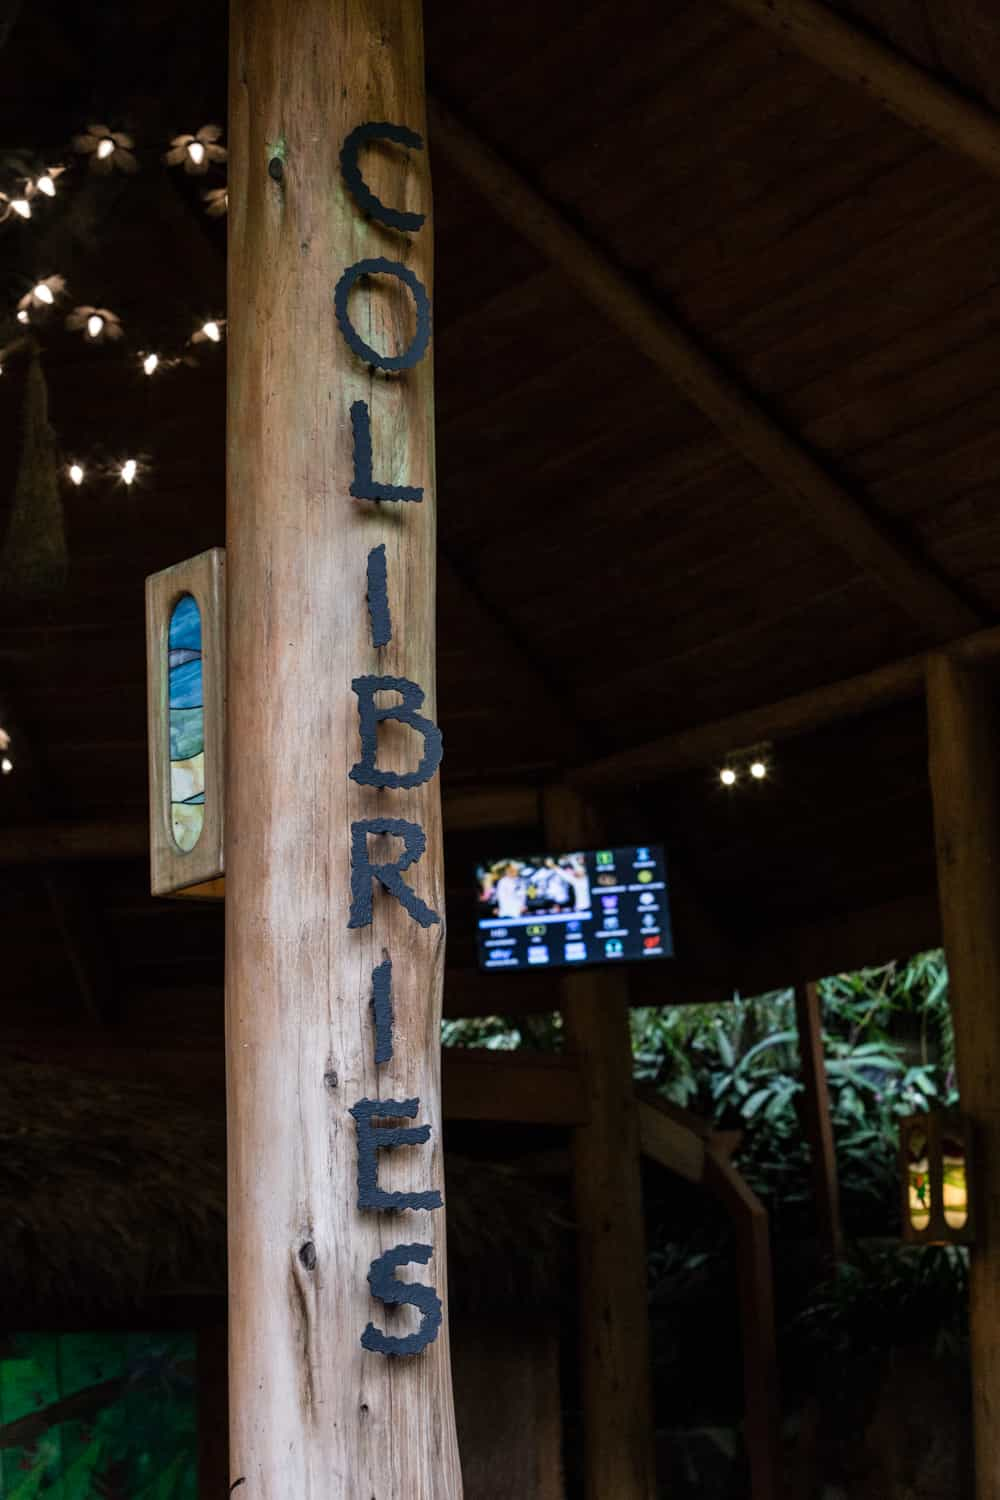 Post at entrance of Colibries wedding reception area with restaurant name.